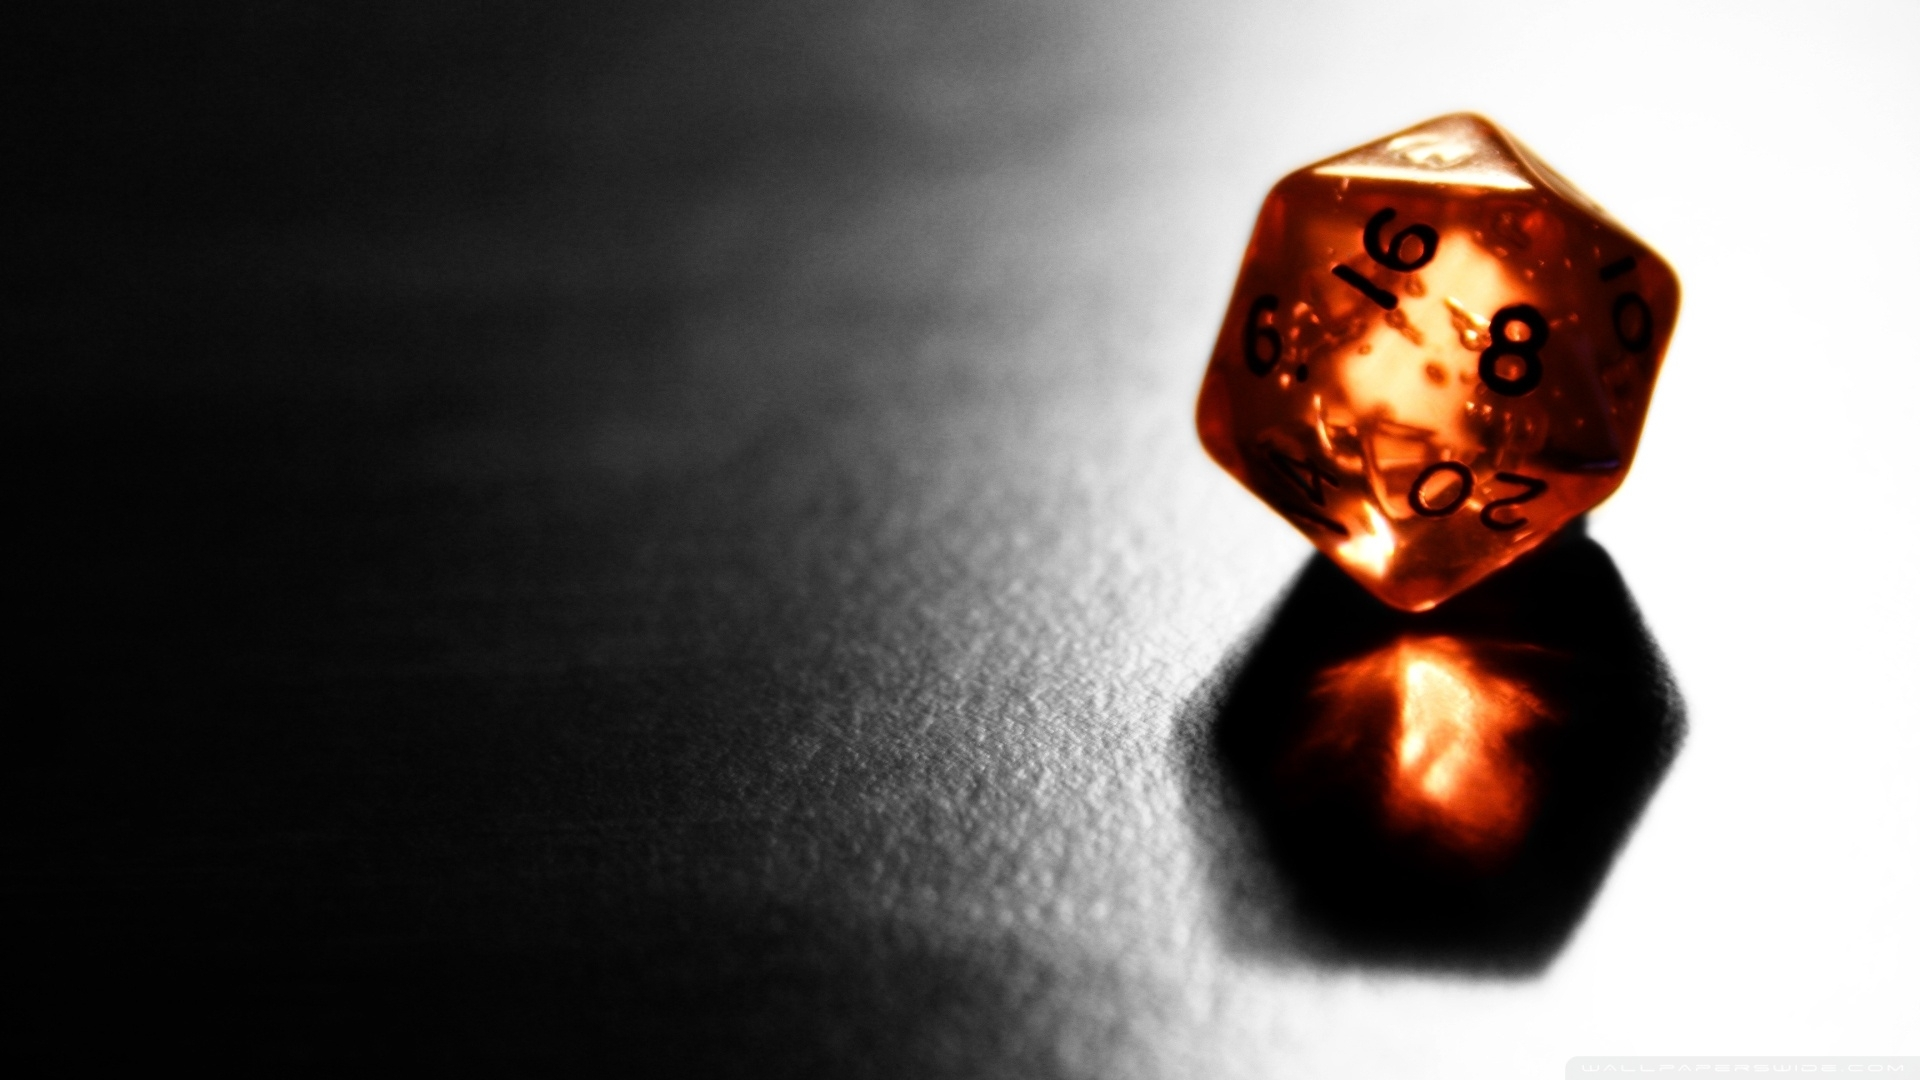 rpg dice wallpaper desktop background for wallpaper hd desktop